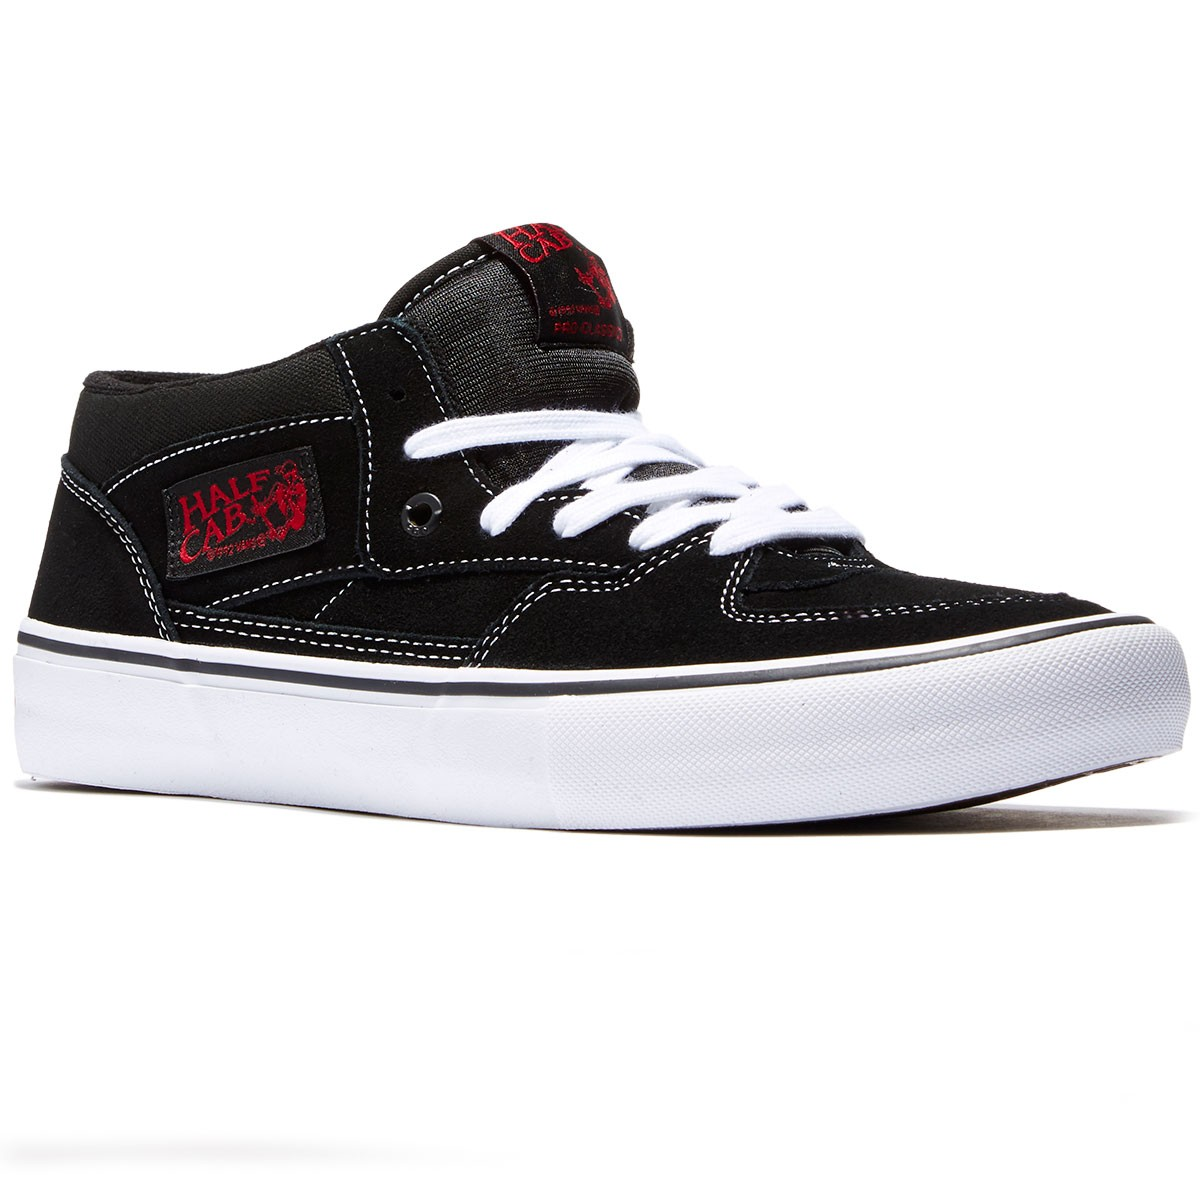 2beb94ded2 Vans Half Cab Pro Shoes - Black White Red - 8.0